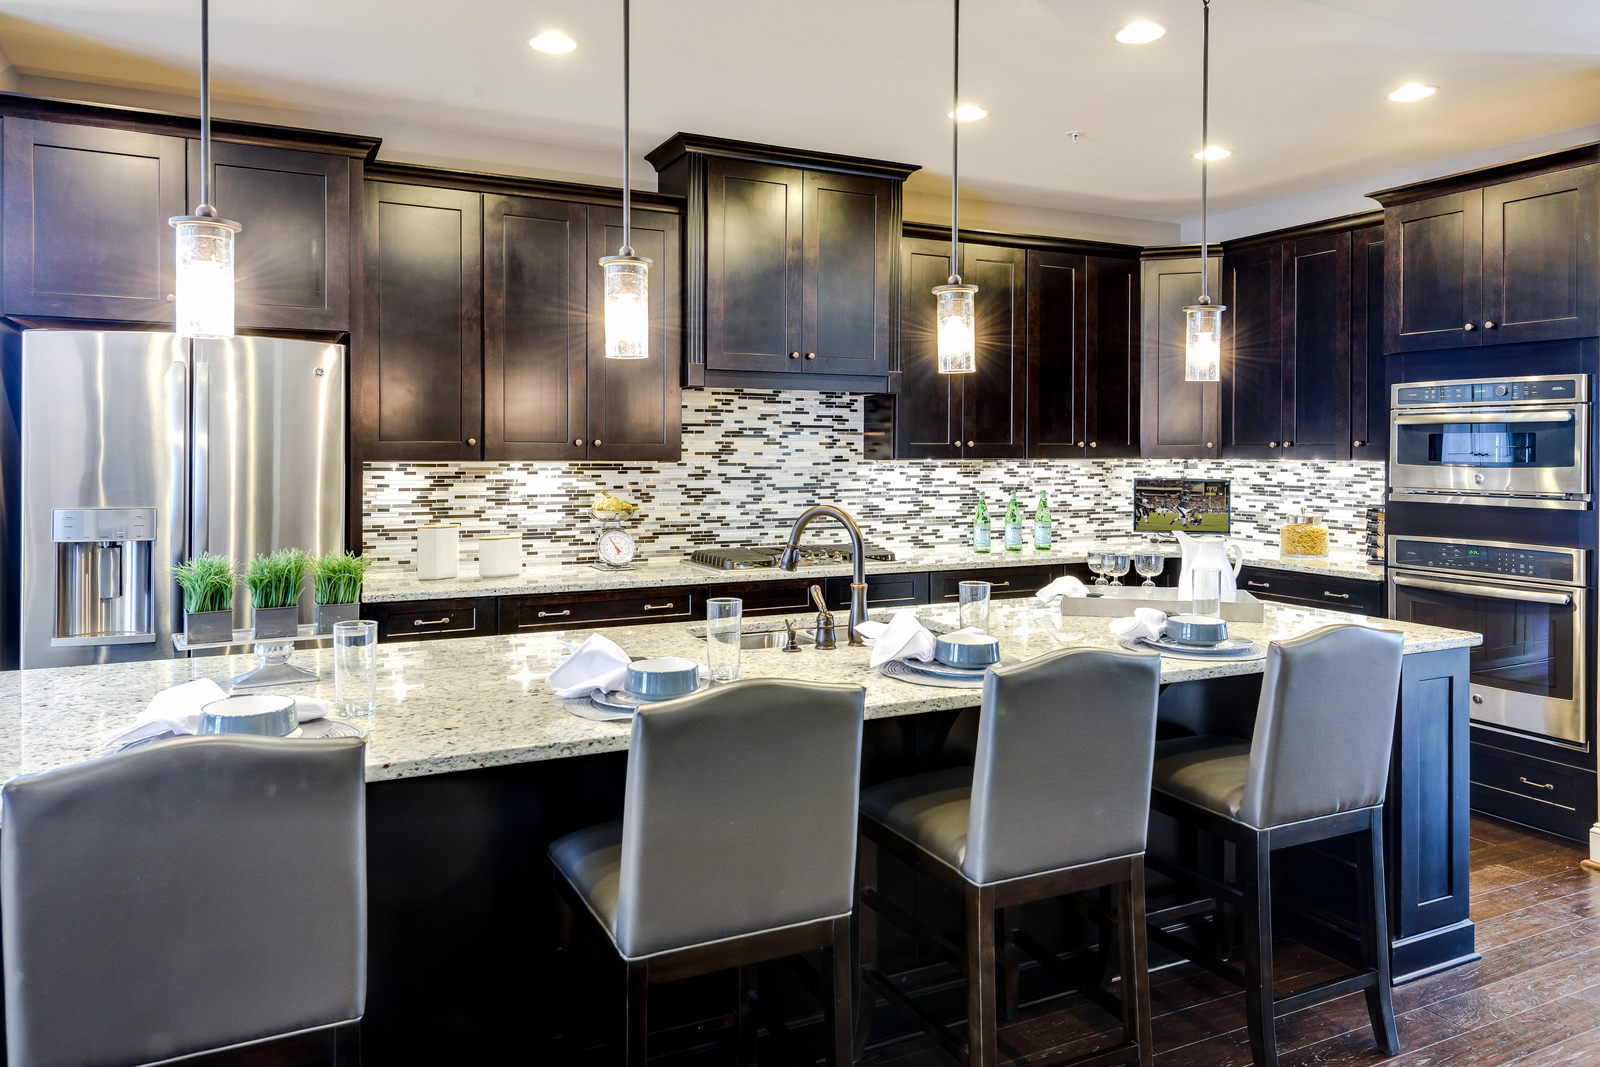 New luxury homes for sale at atwater townhomes in malvern pa within the dream kitchen solutioingenieria Images